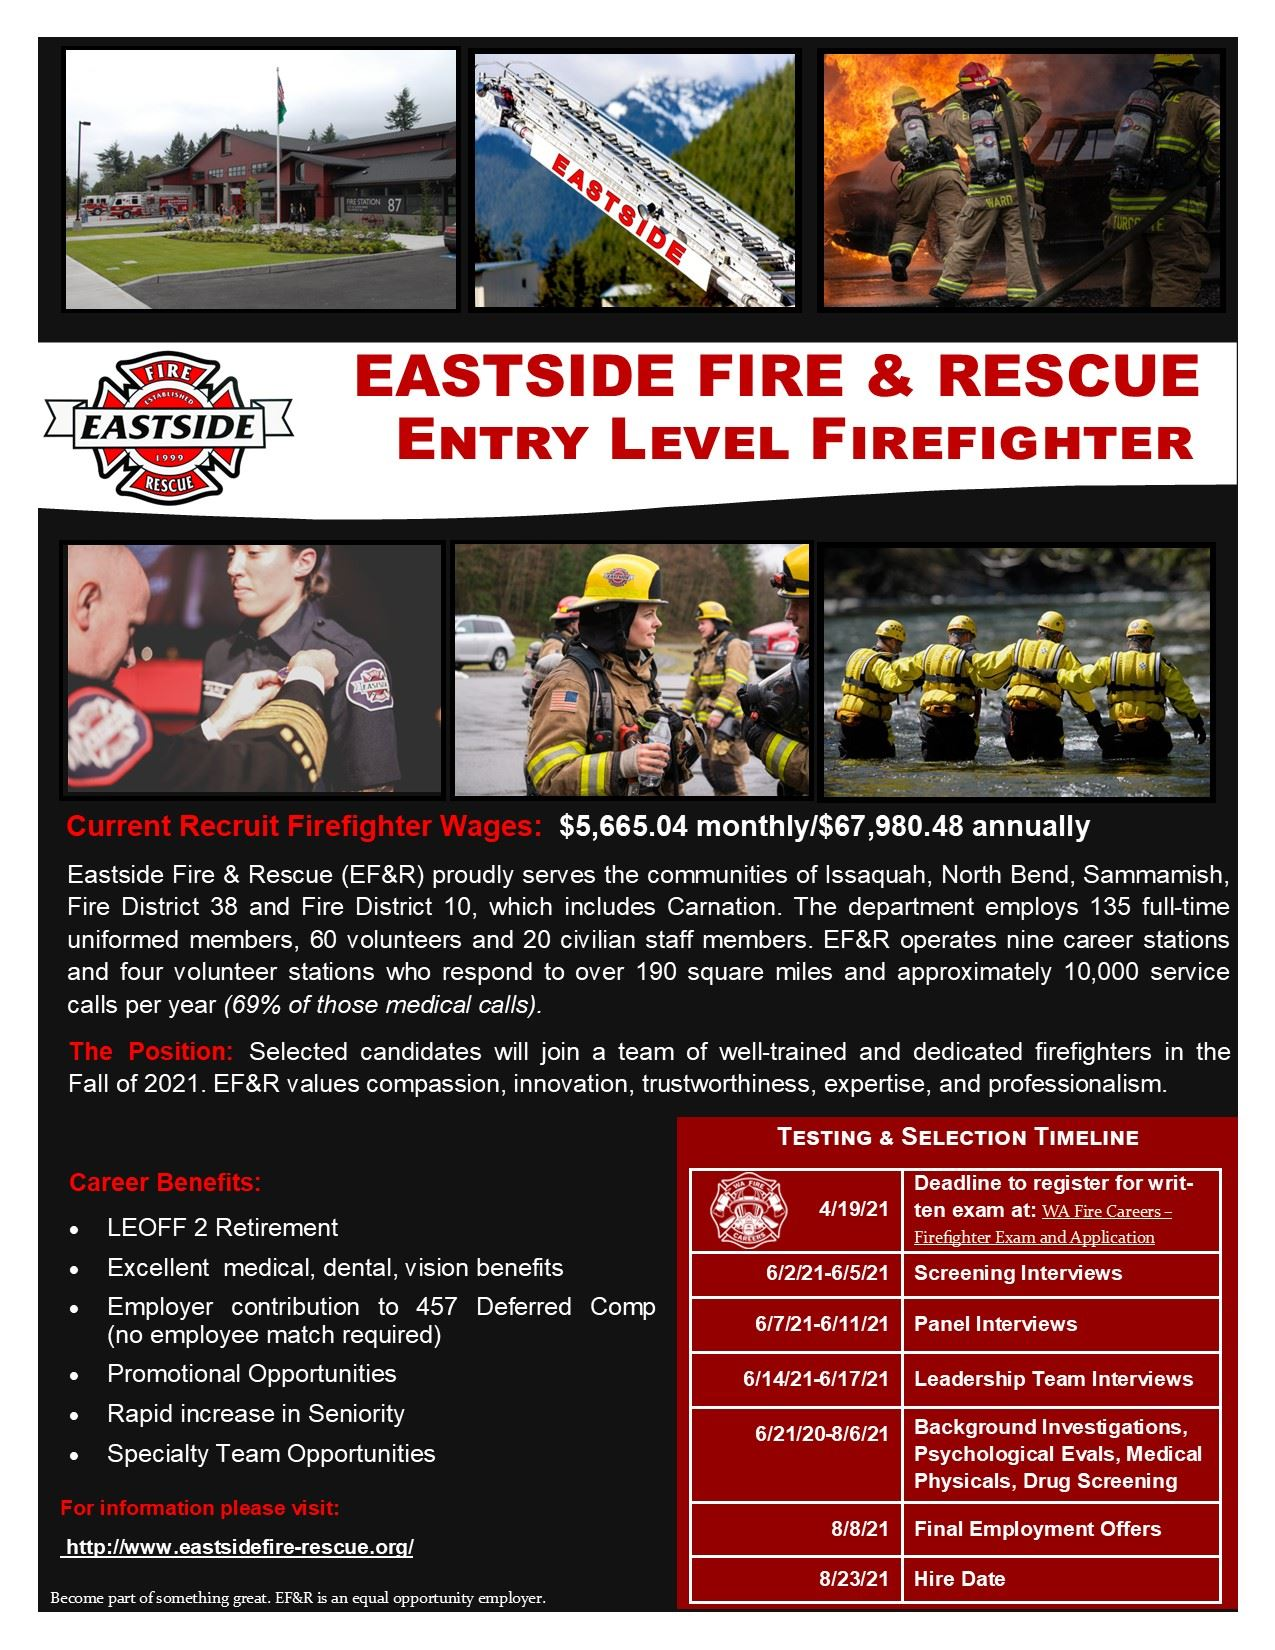 EFR Employment Flyer - Entry Level Firefighter Recruitment